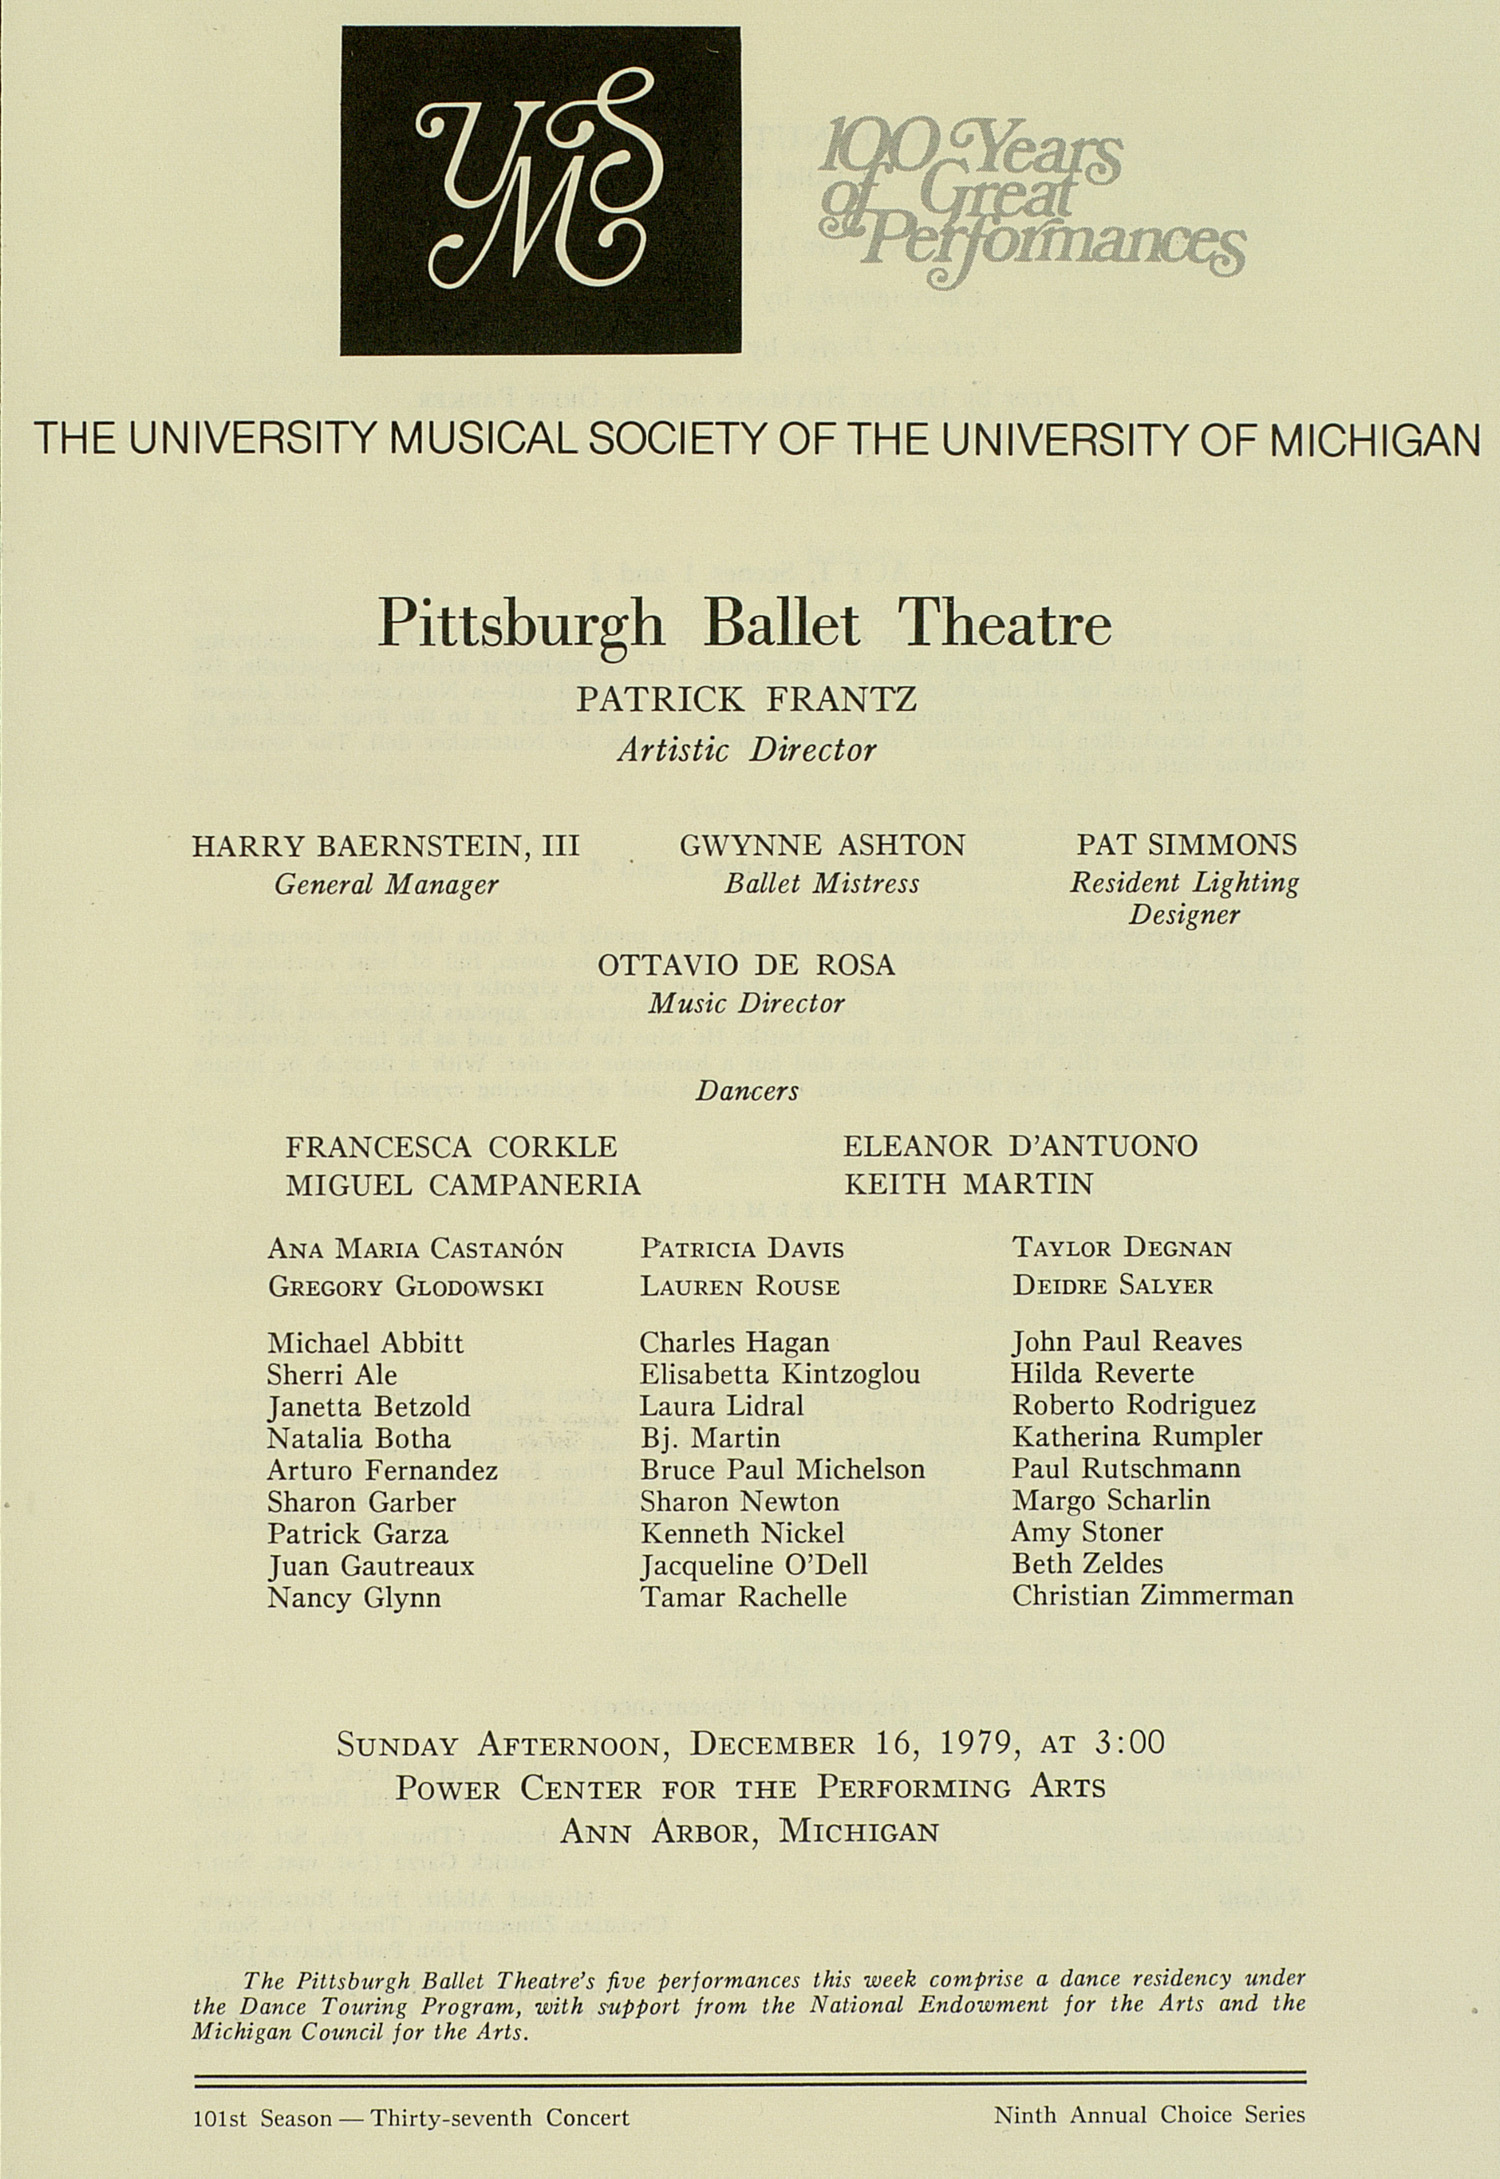 UMS Concert Program, December 16, 1979: 100 Years Of Great Performances -- Pittsburgh Ballet Theatre image